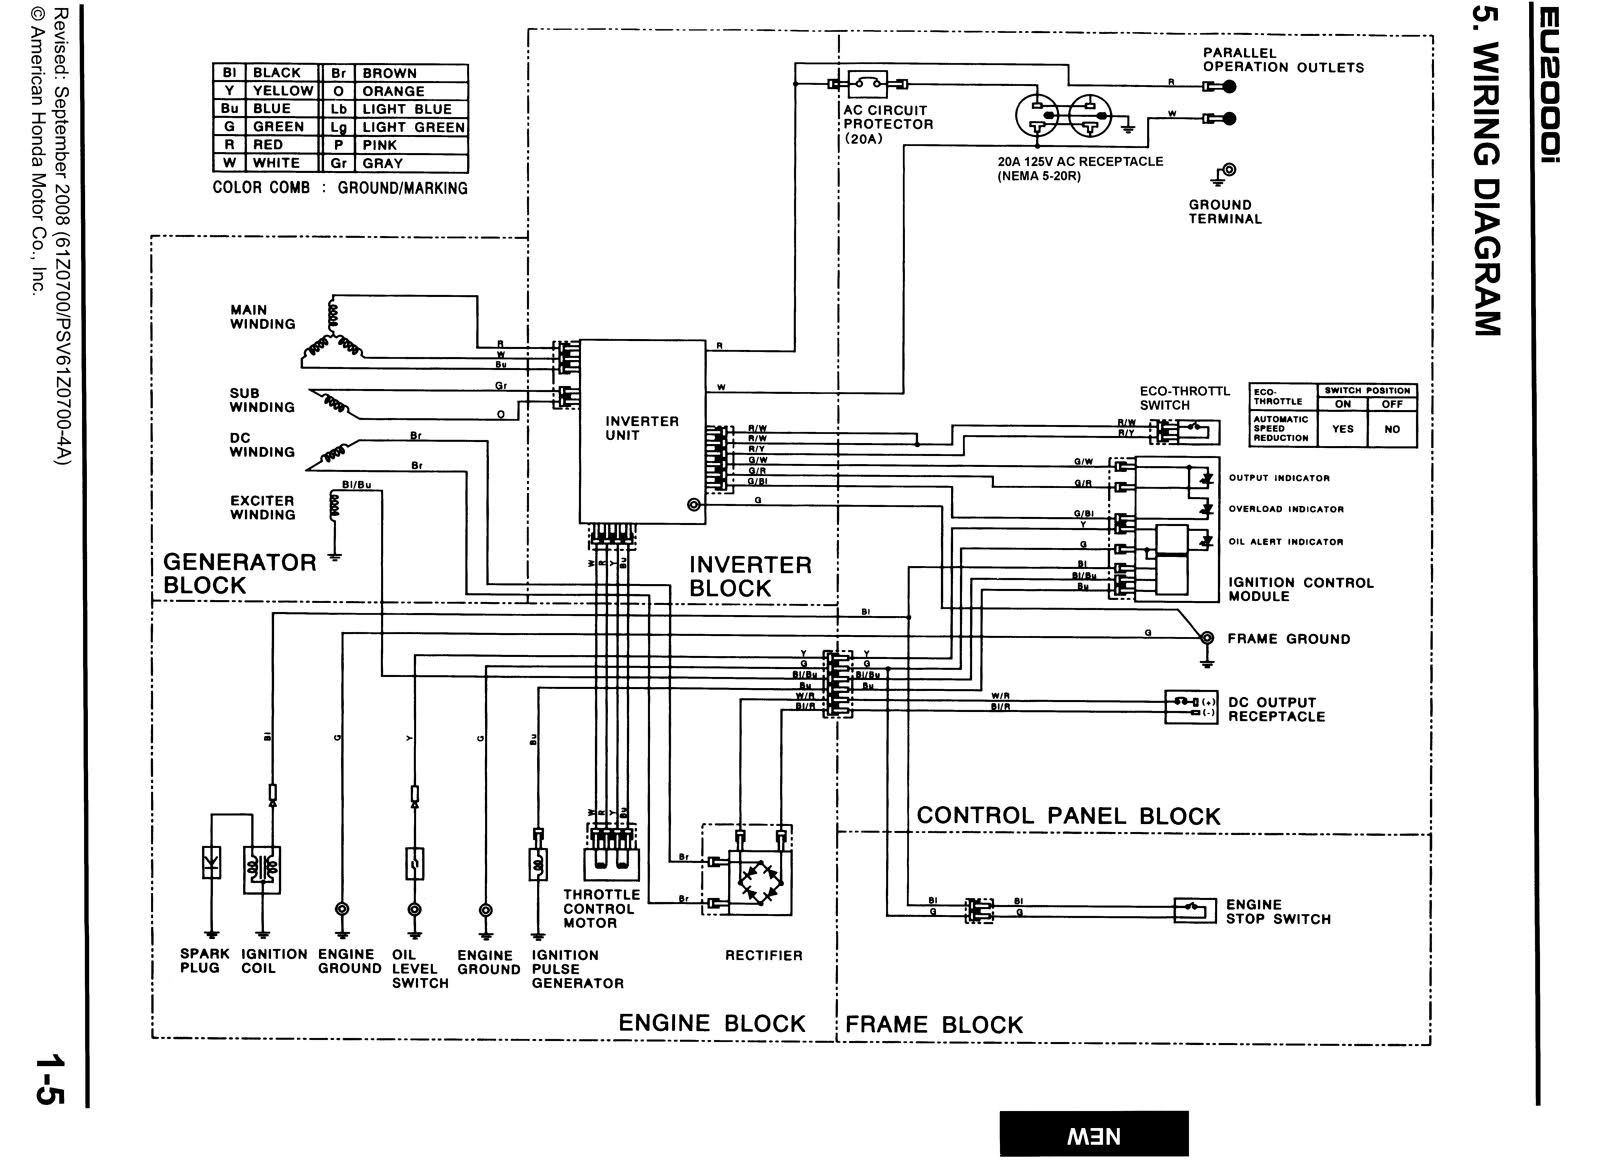 Holiday Rambler Wiring Diagram | Camper To Glamper | Pinterest - Wiring Diagram For Travel Trailer